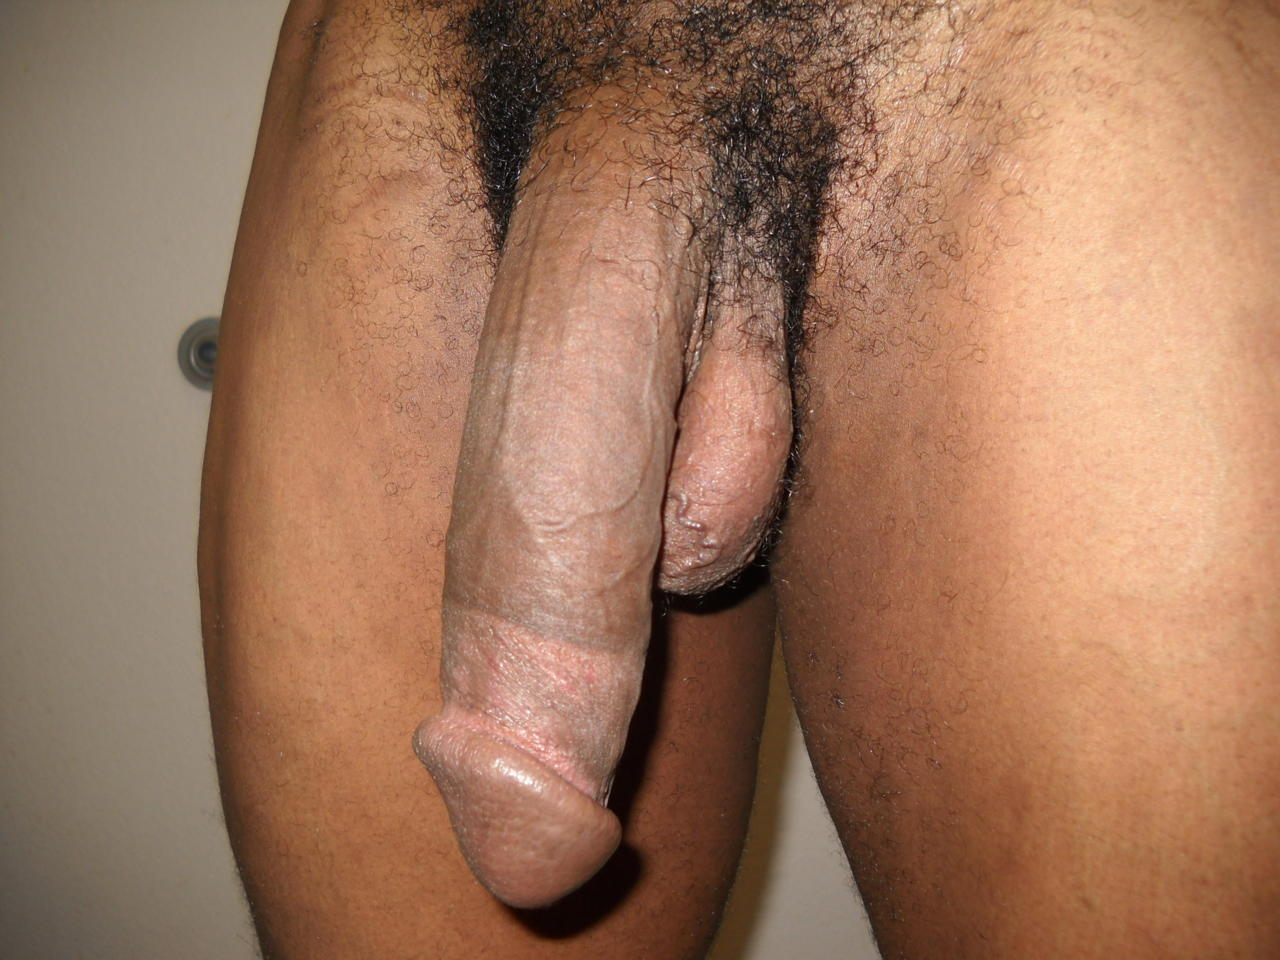 Pictures of big black dicks